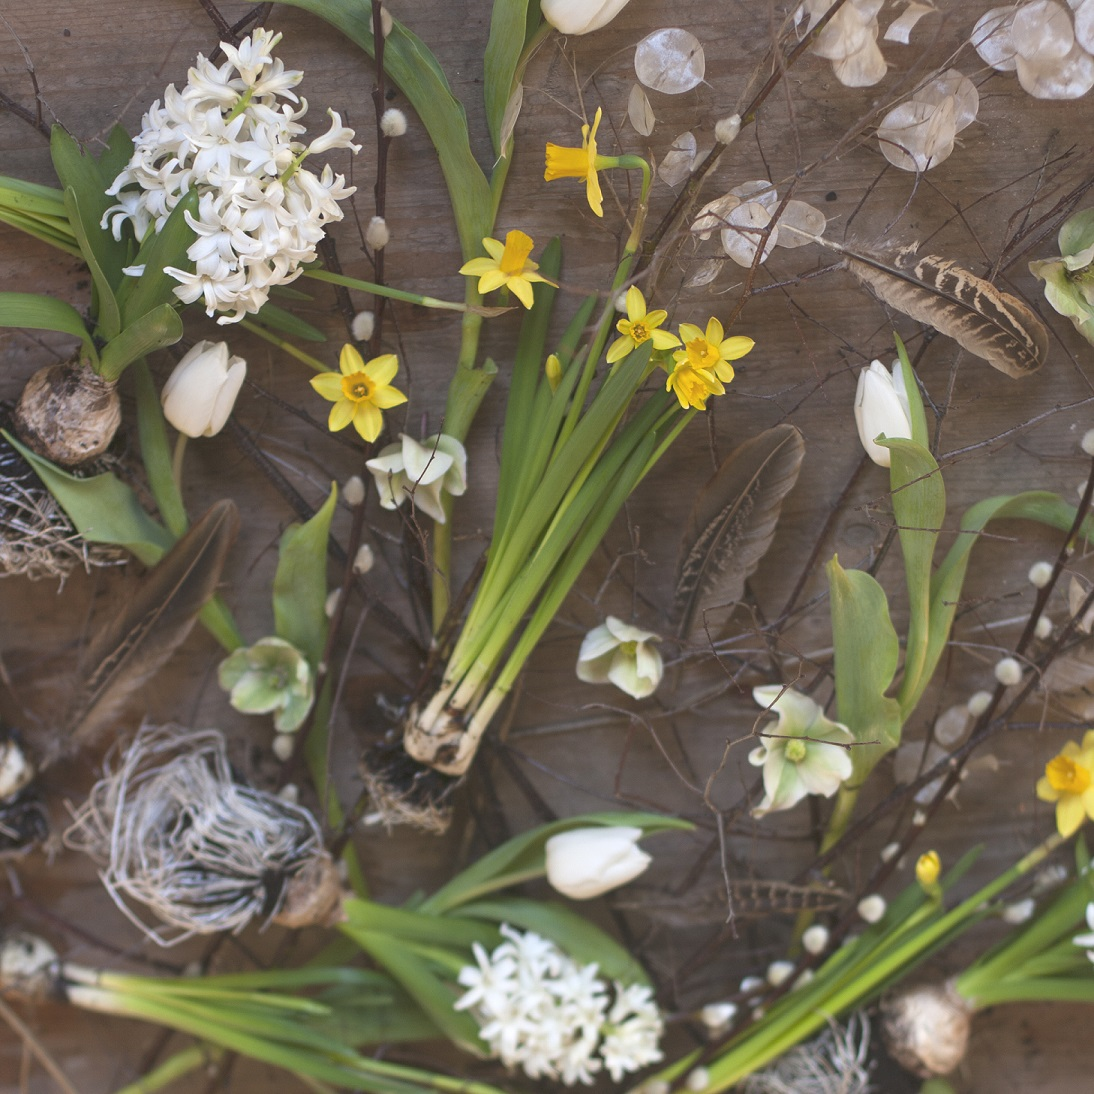 Easter Wreath Floristry with Wild Gorse